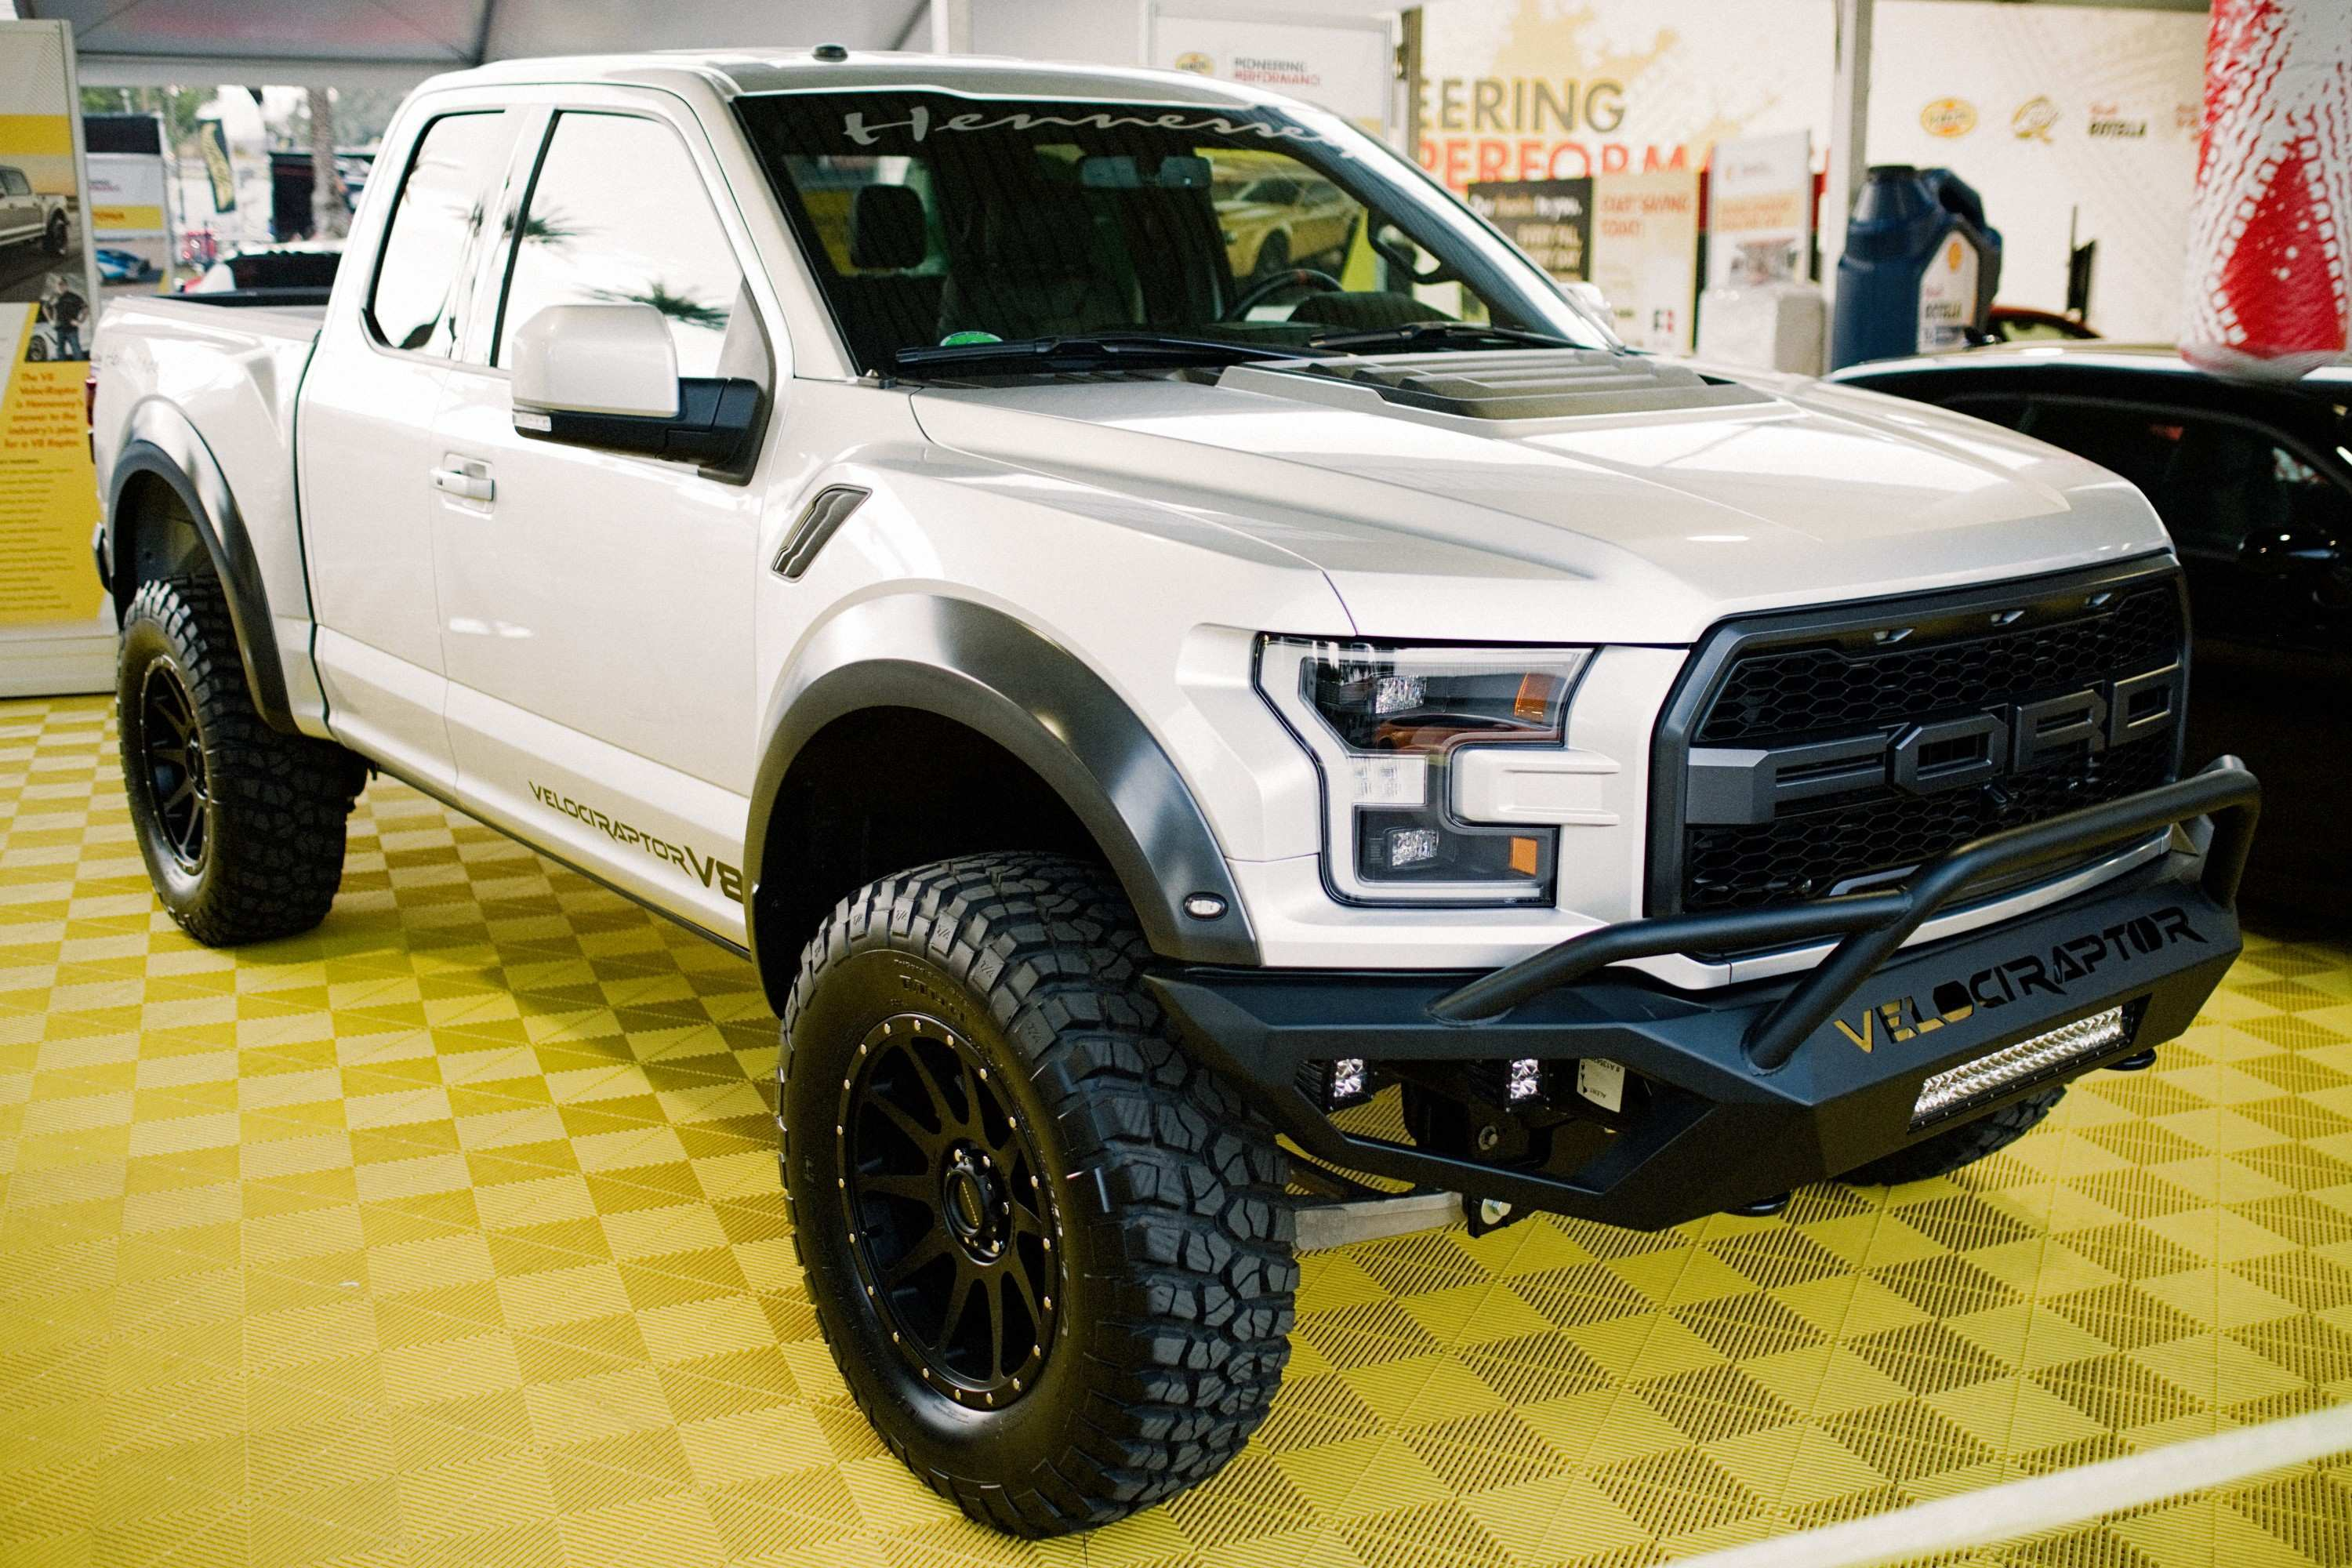 39 All New 2019 Ford Velociraptor Price Release Date And Concept